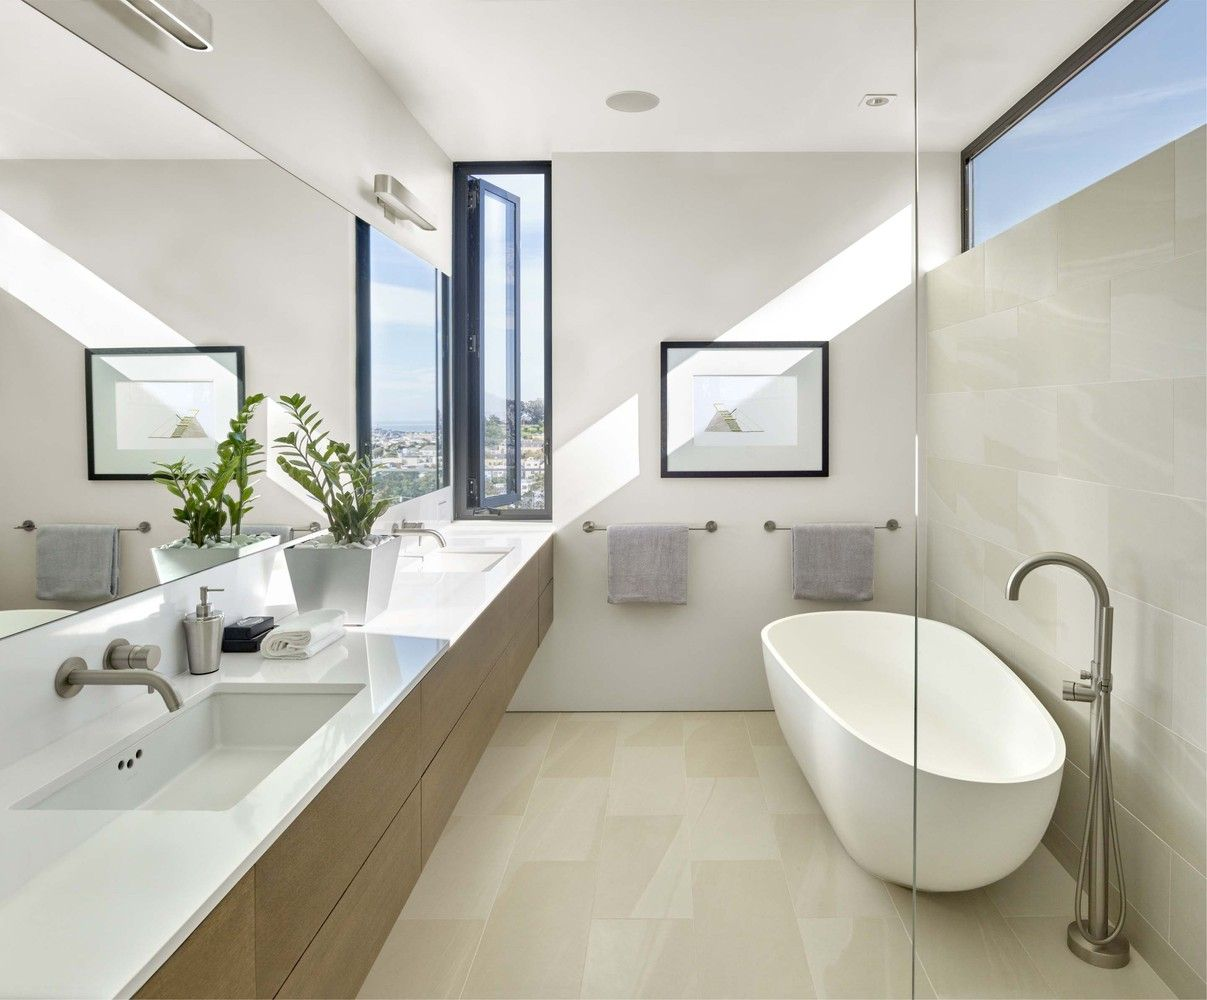 Narrow bathroom windows - Gallery Of Laidley Street Residence Michael Hennessey Architecture 2